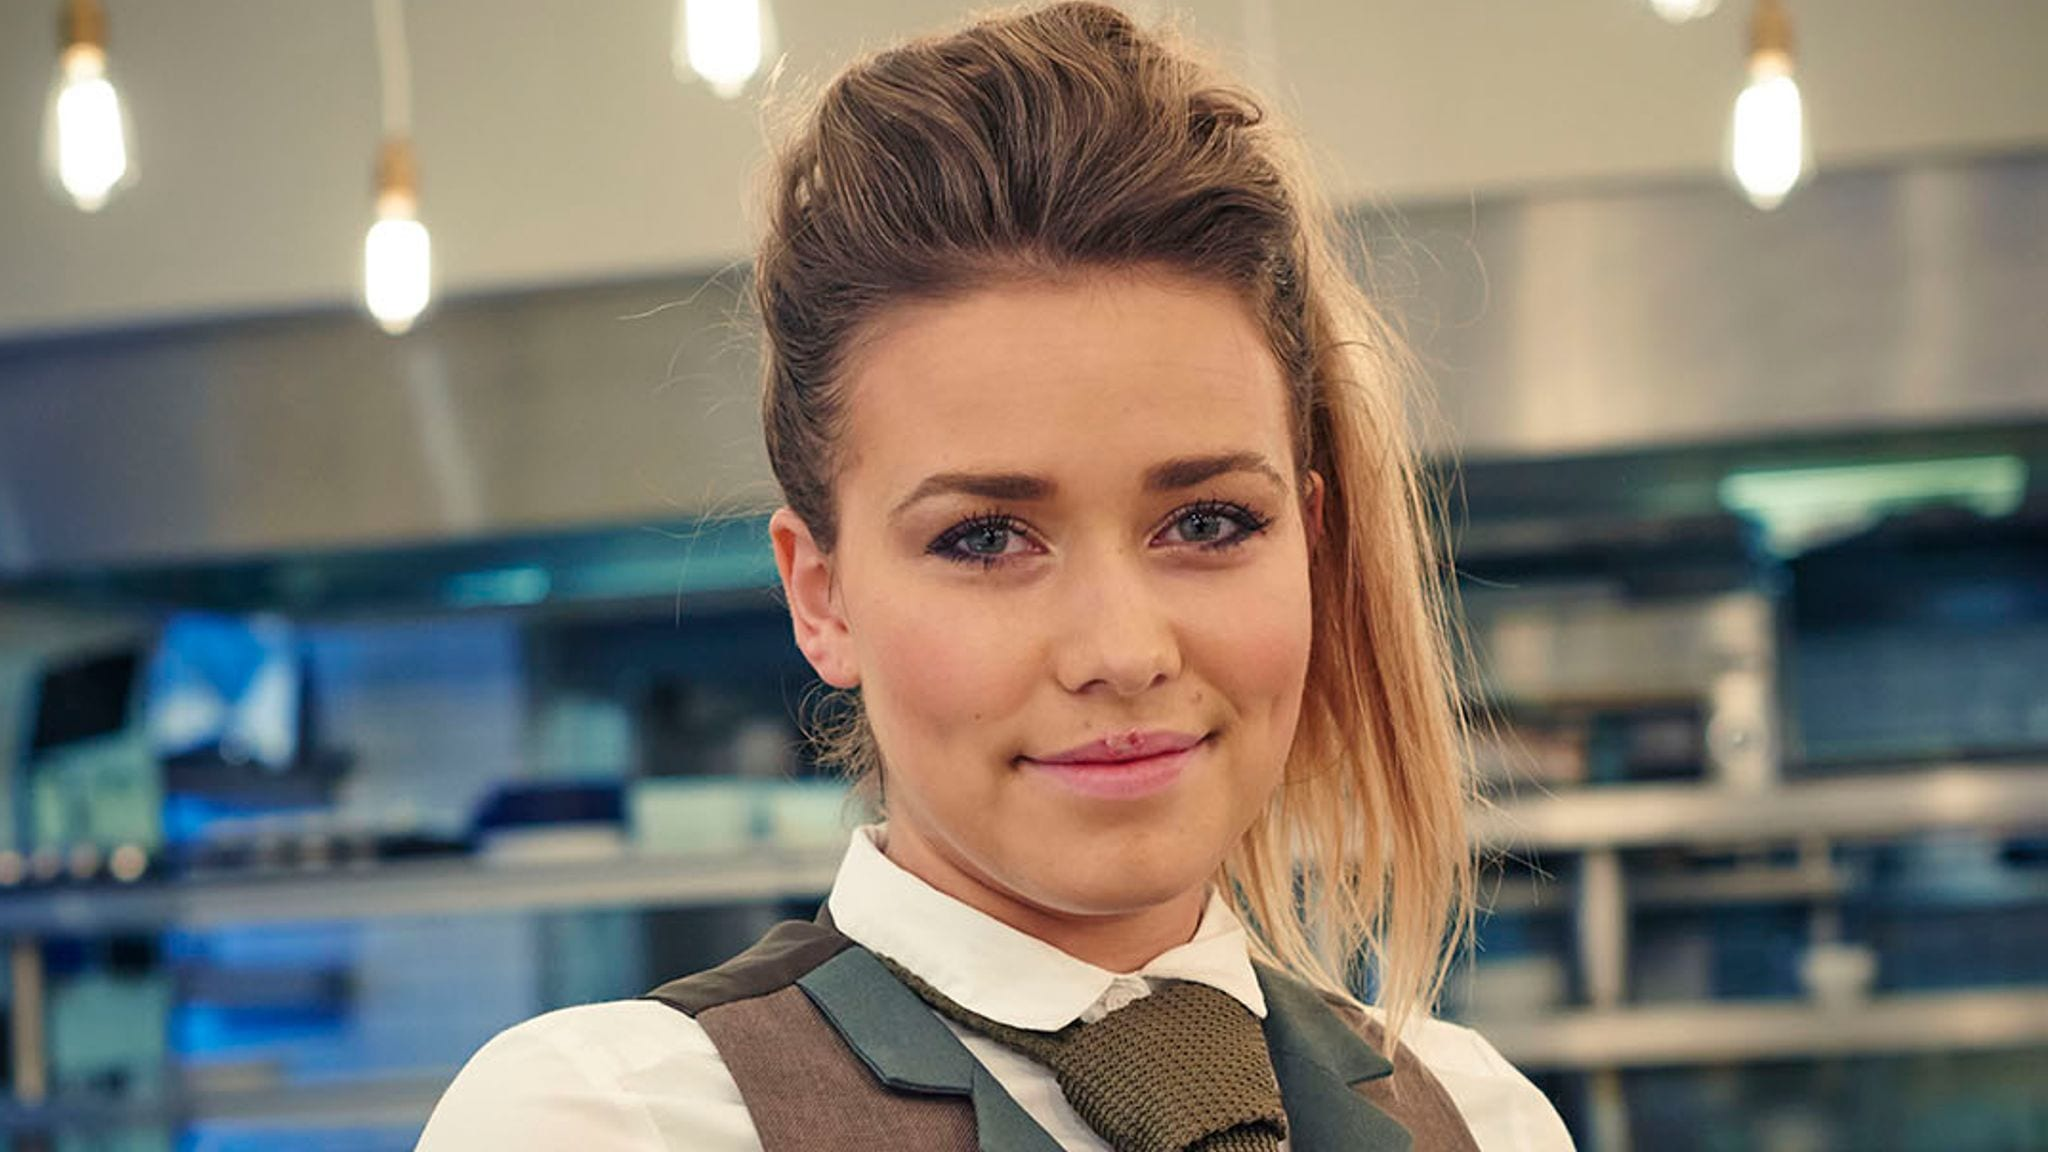 Laura Tott from First Date Announces Engagement on Instagram